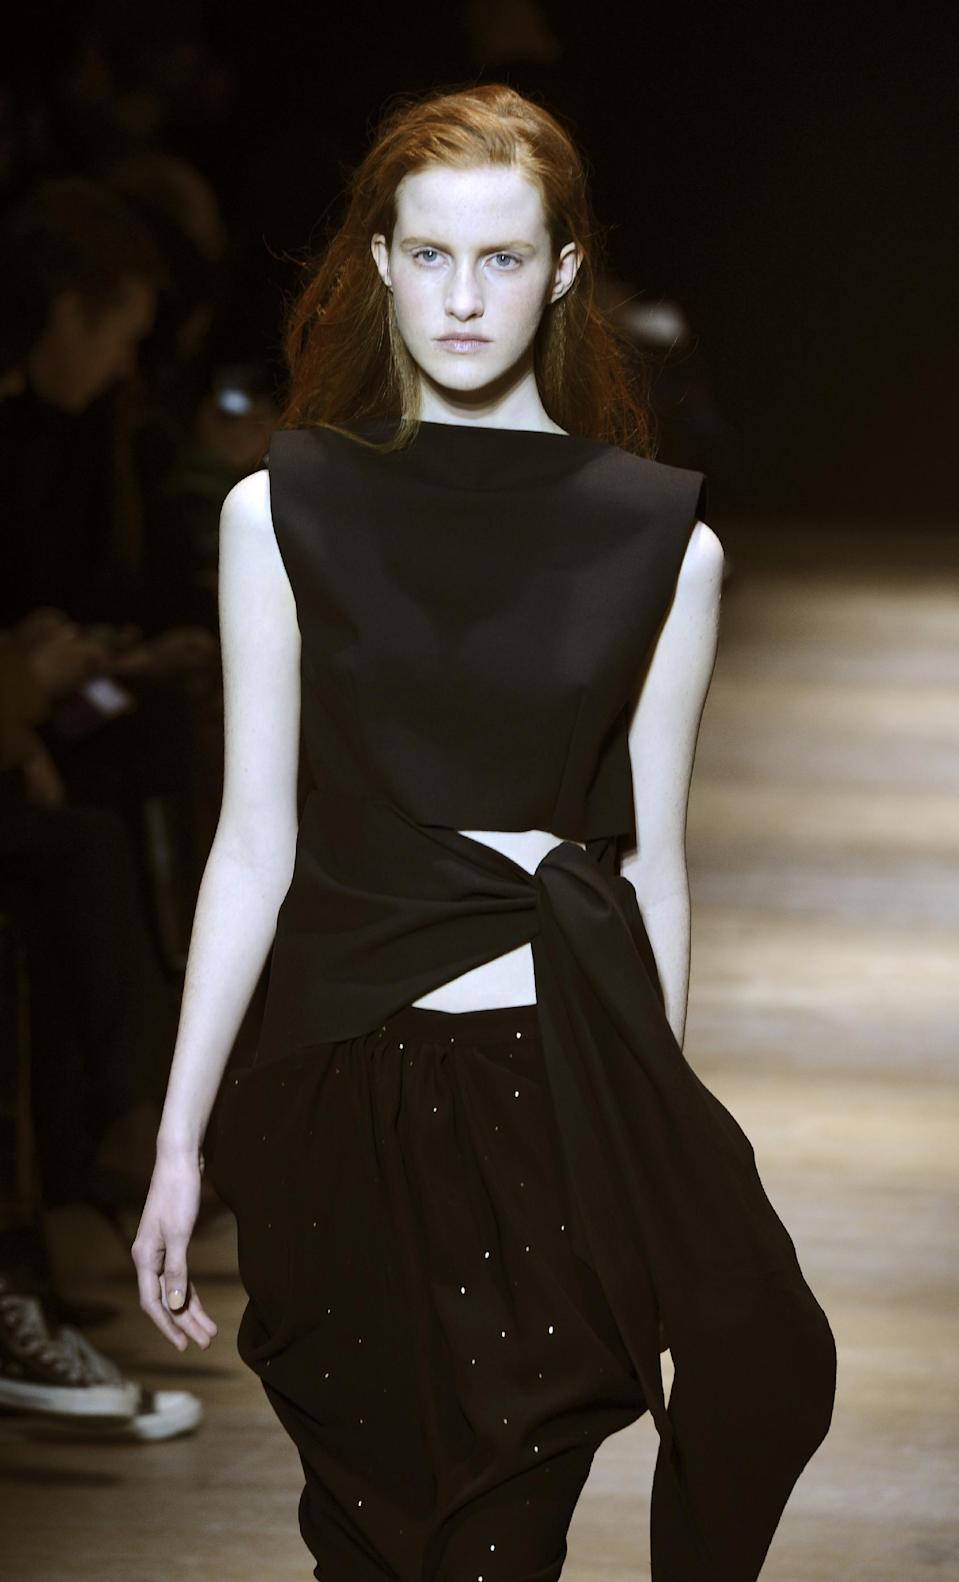 A model presents a creation by Irish fashion designer Sharon Wauchob as part of her Ready to Wear's Fall-Winter 2013-2014 fashion collection, presented Thursday, Feb.28, 2013 in Paris. (AP Photo/Zacharie Scheurer)